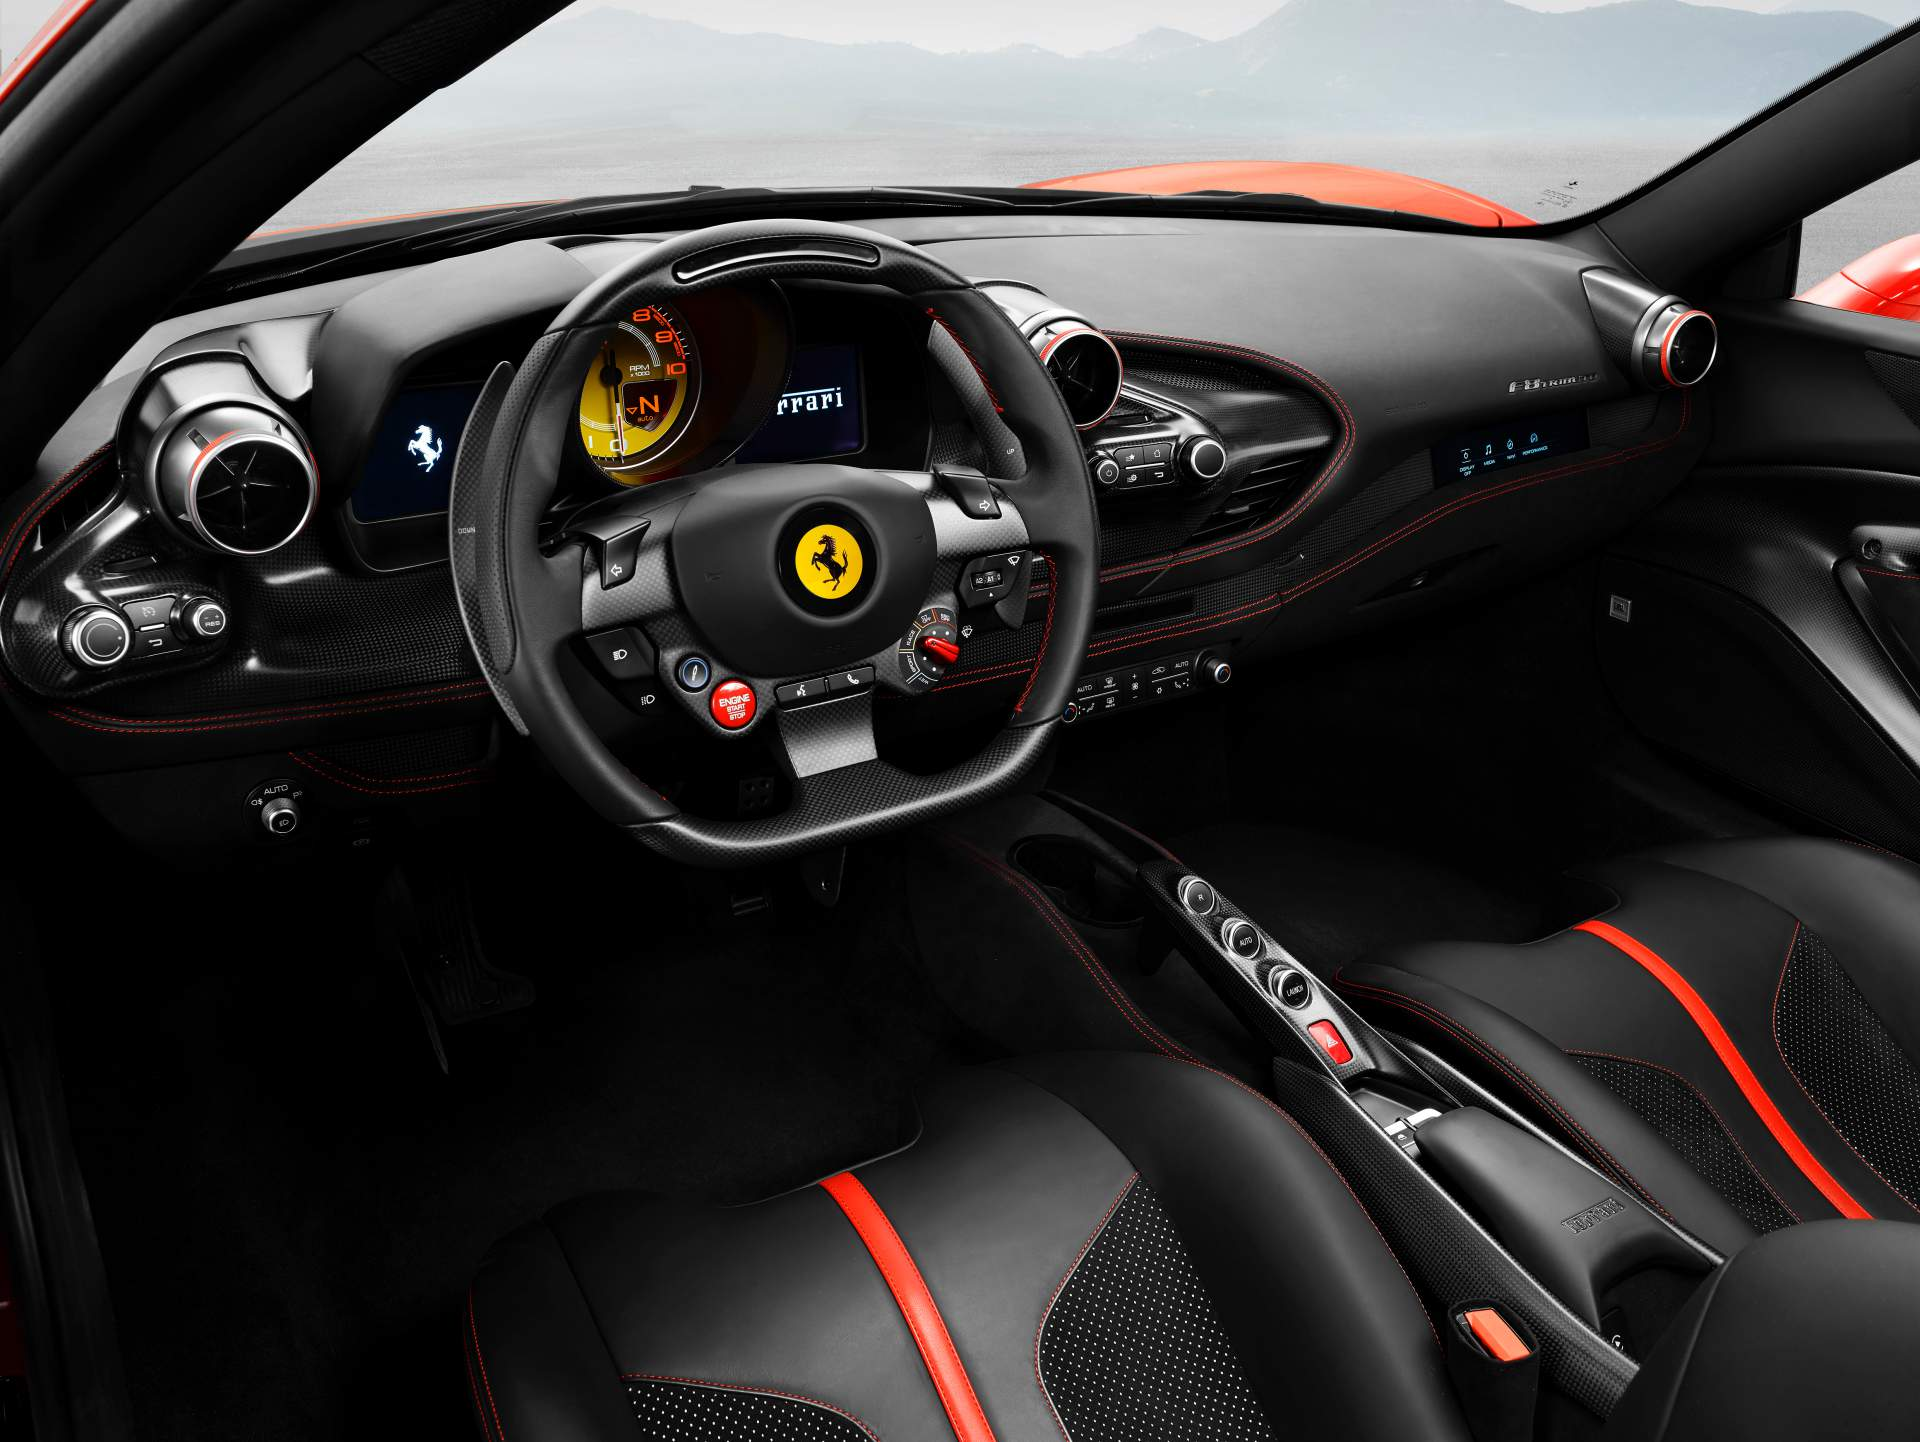 Ferrari F8 Tributo Revealed As 488 GTB Replacement